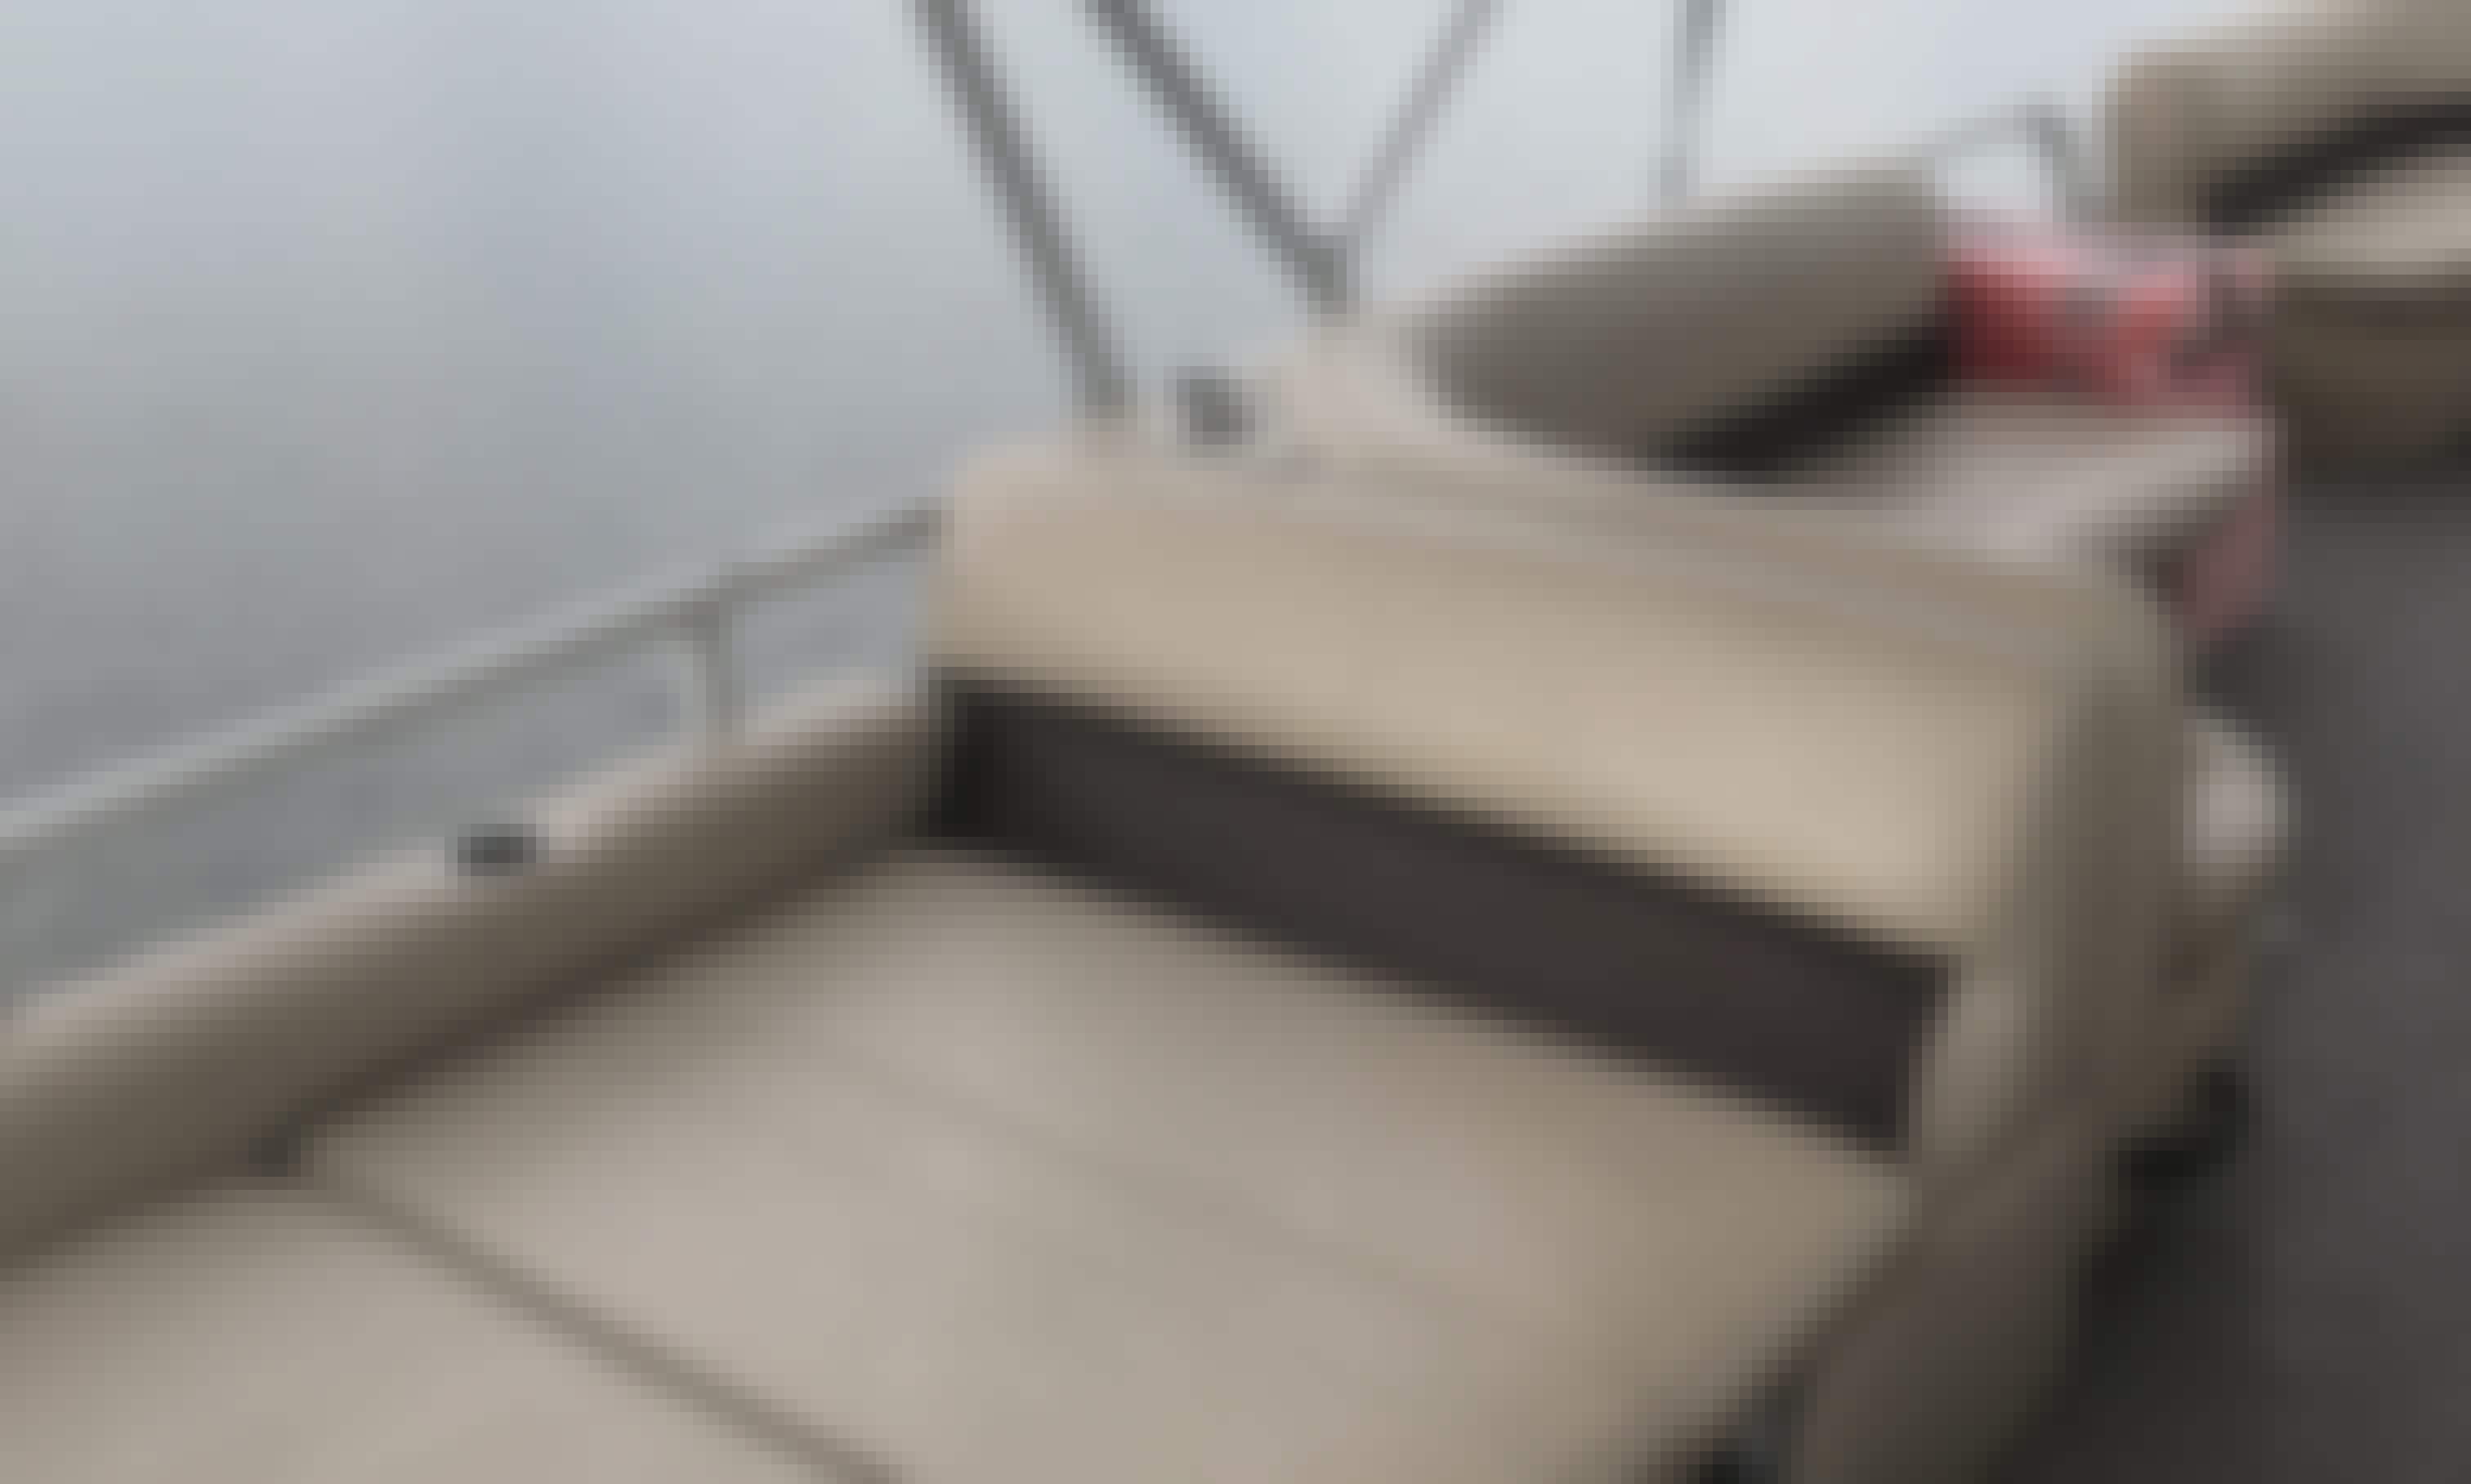 Hire 22' 115HP Luxury Pontoon Boat for 12 Passengers in Delafield, Wisconsin